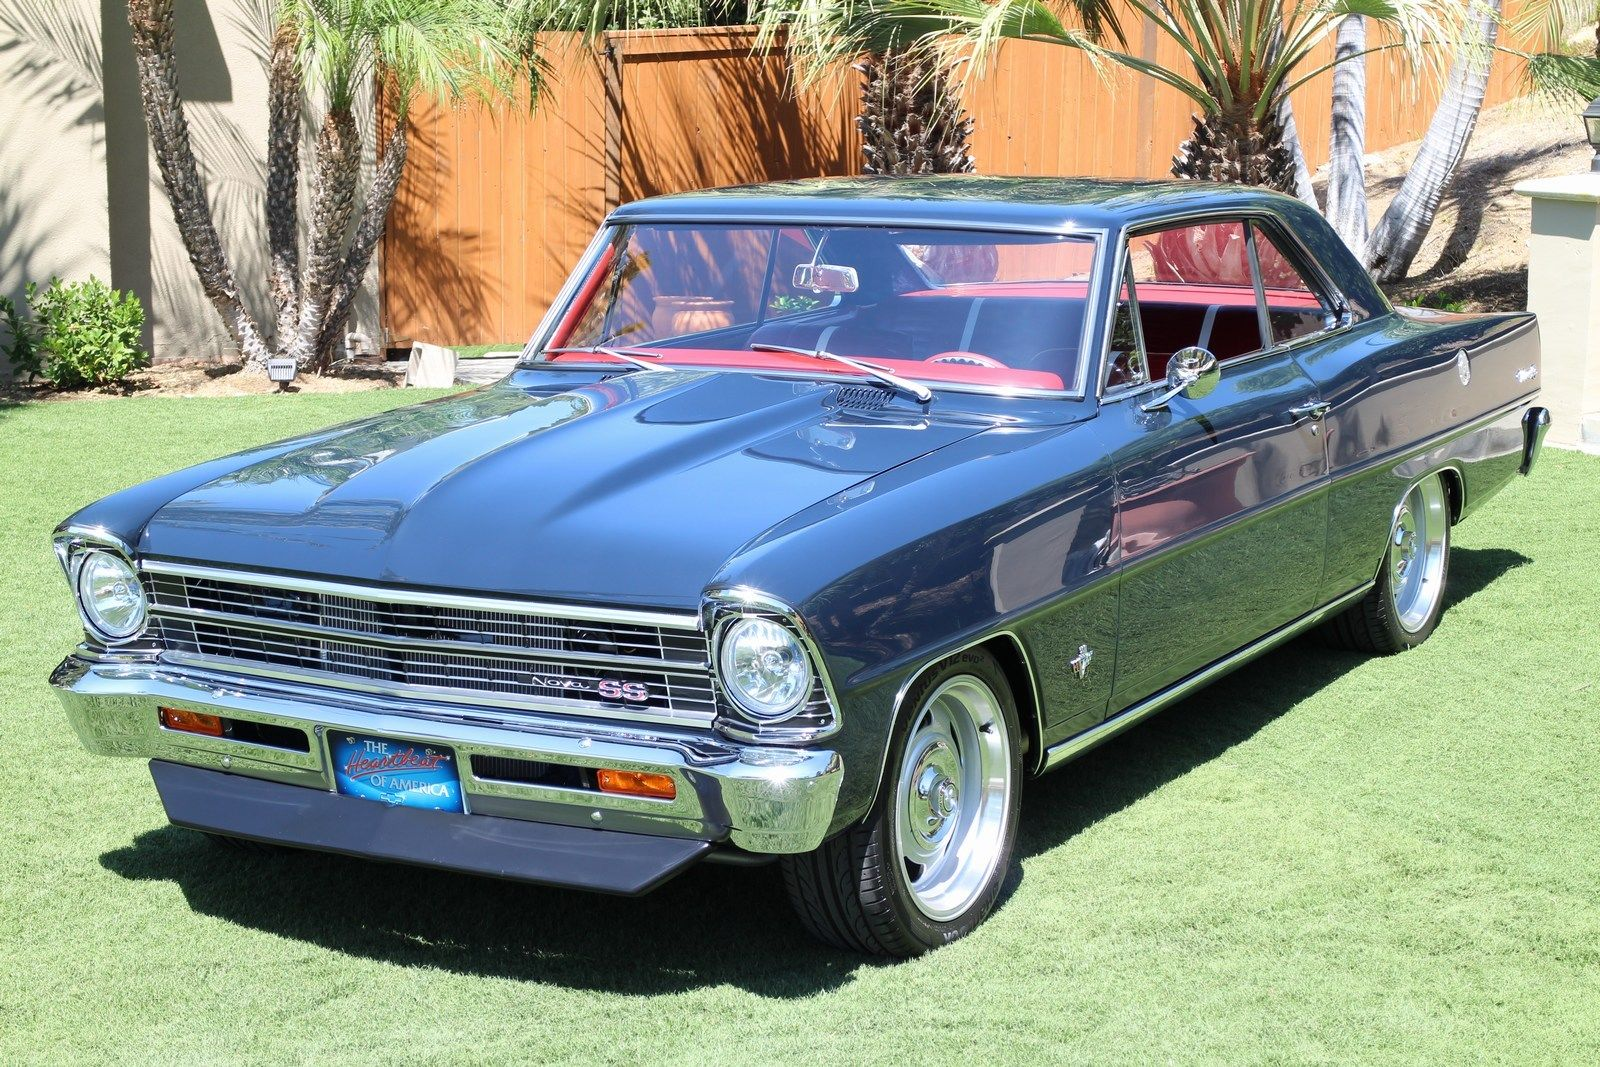 1967 Chevrolet Nova SS Tribute - Project Cars For Sale